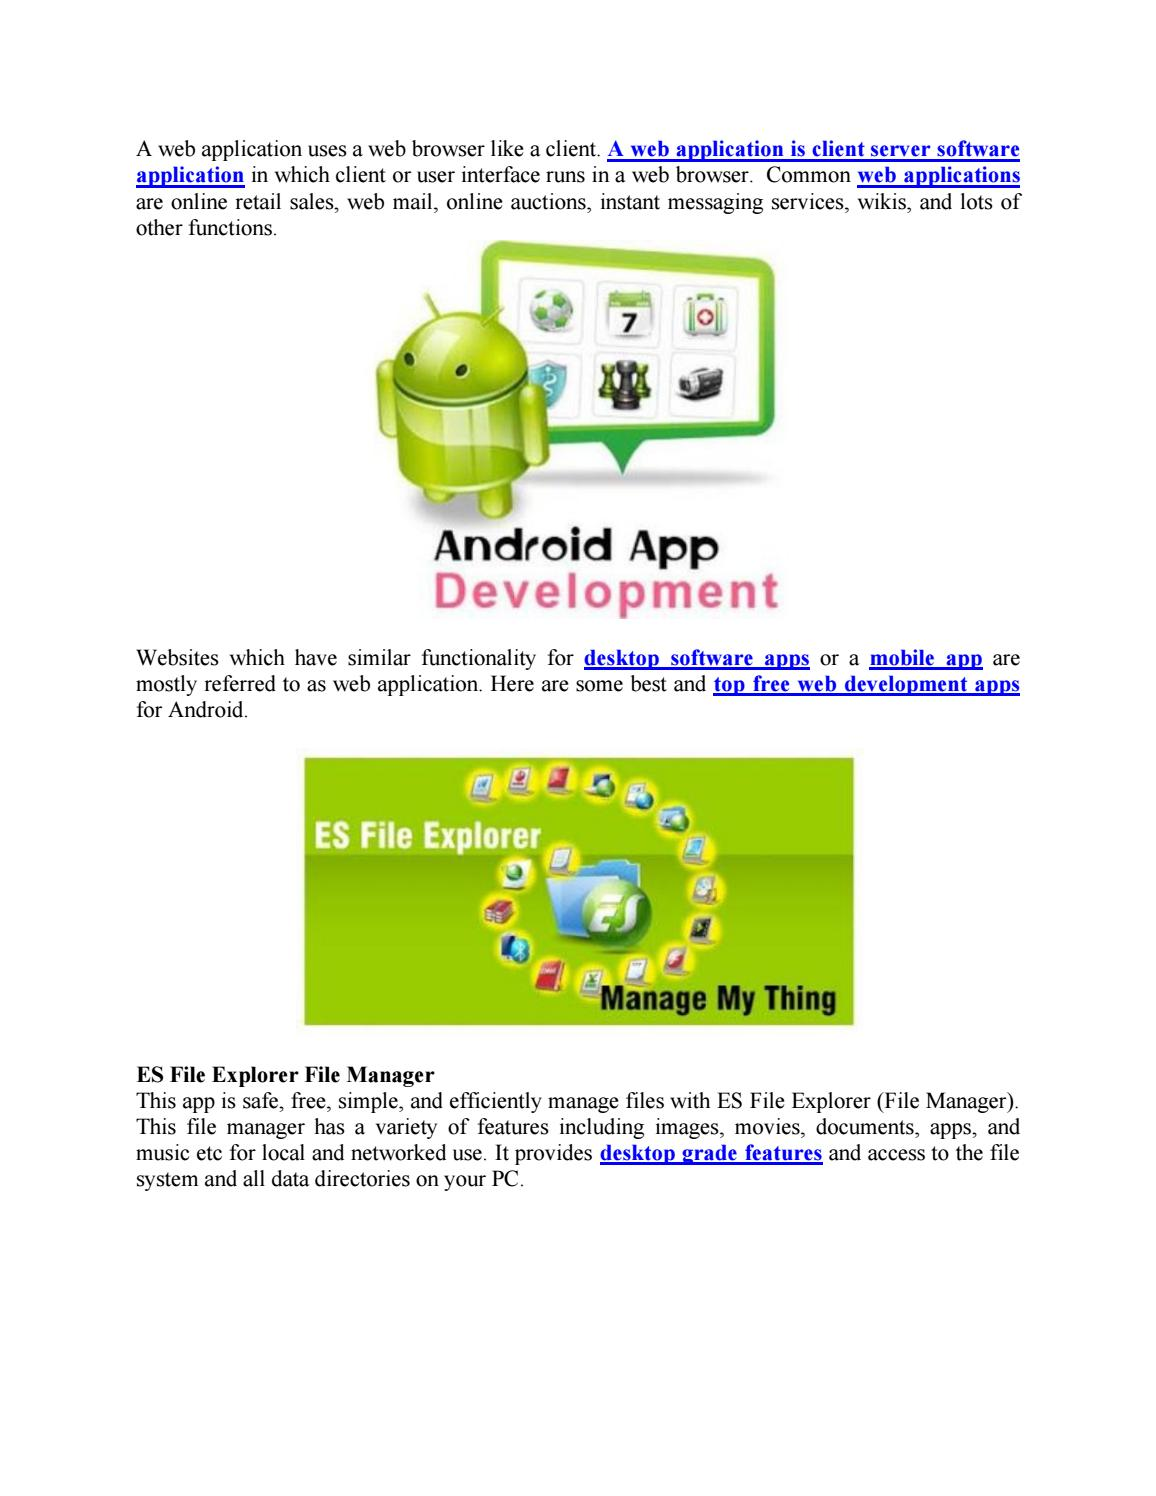 Top Web Development Applications for Android by Solutions